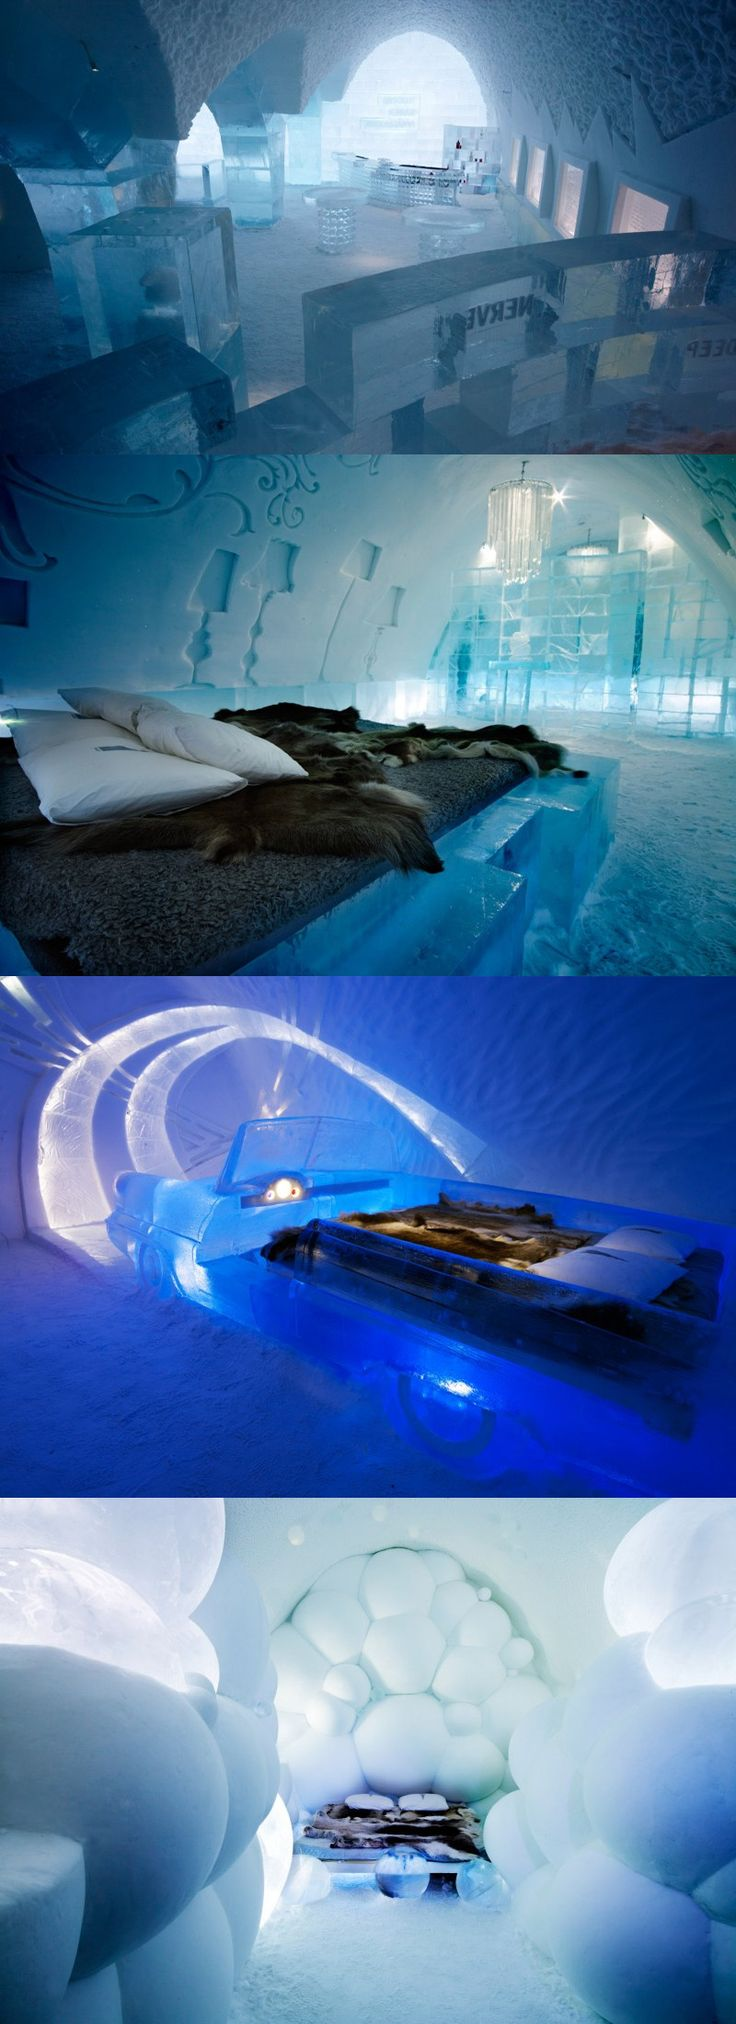 Ice Hotel, Sweden Top Luxurious & Secluded Hotels Around The World                                                                                                                                                     More